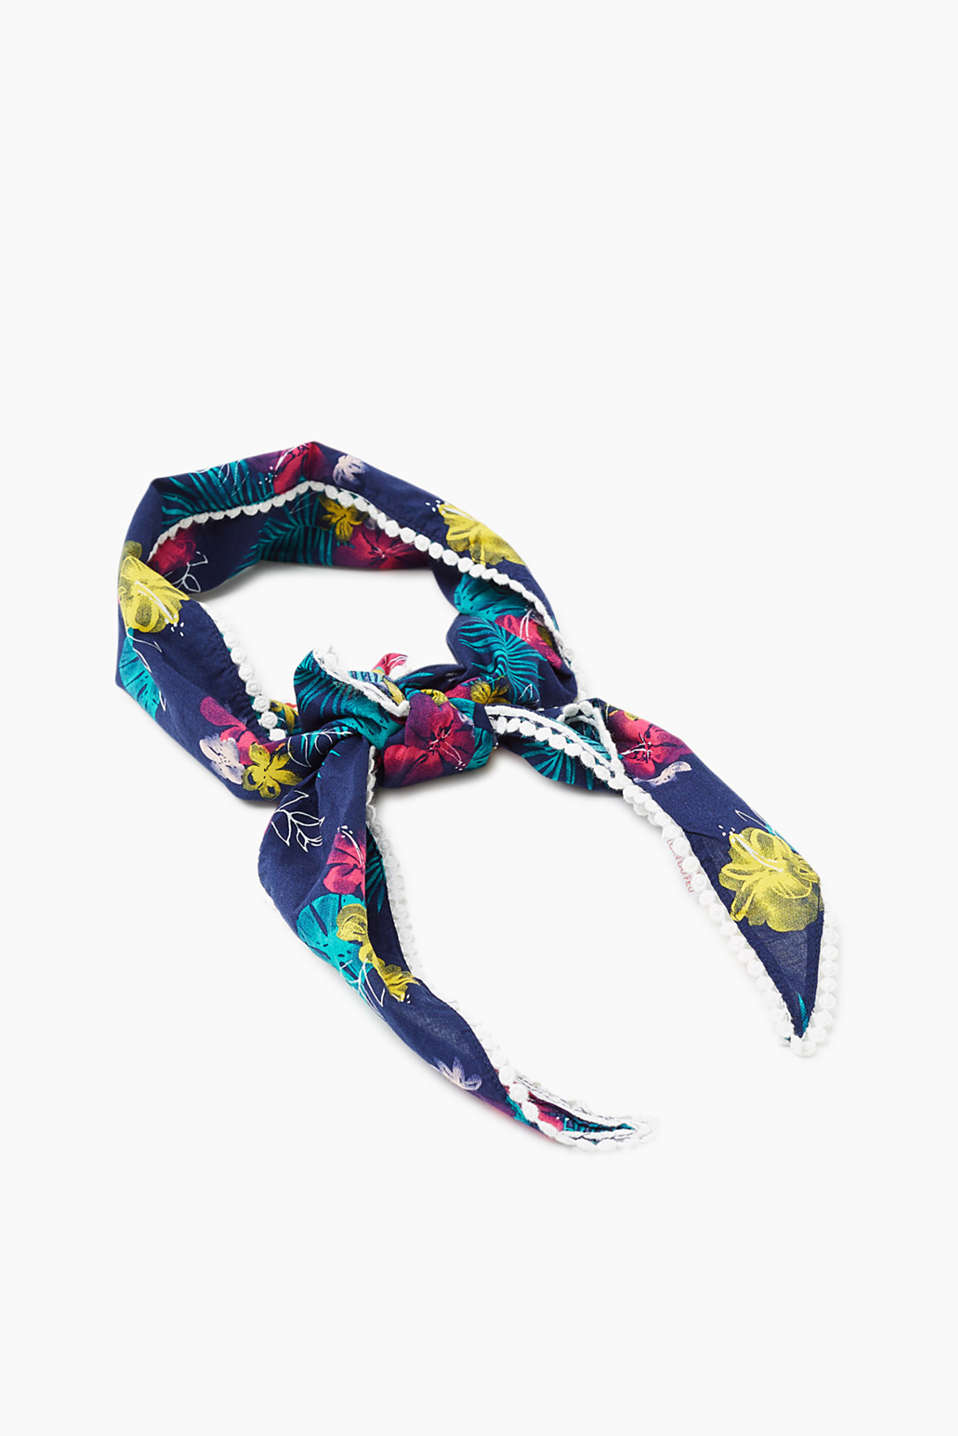 Esprit - Triangular print scarf, 100% cotton